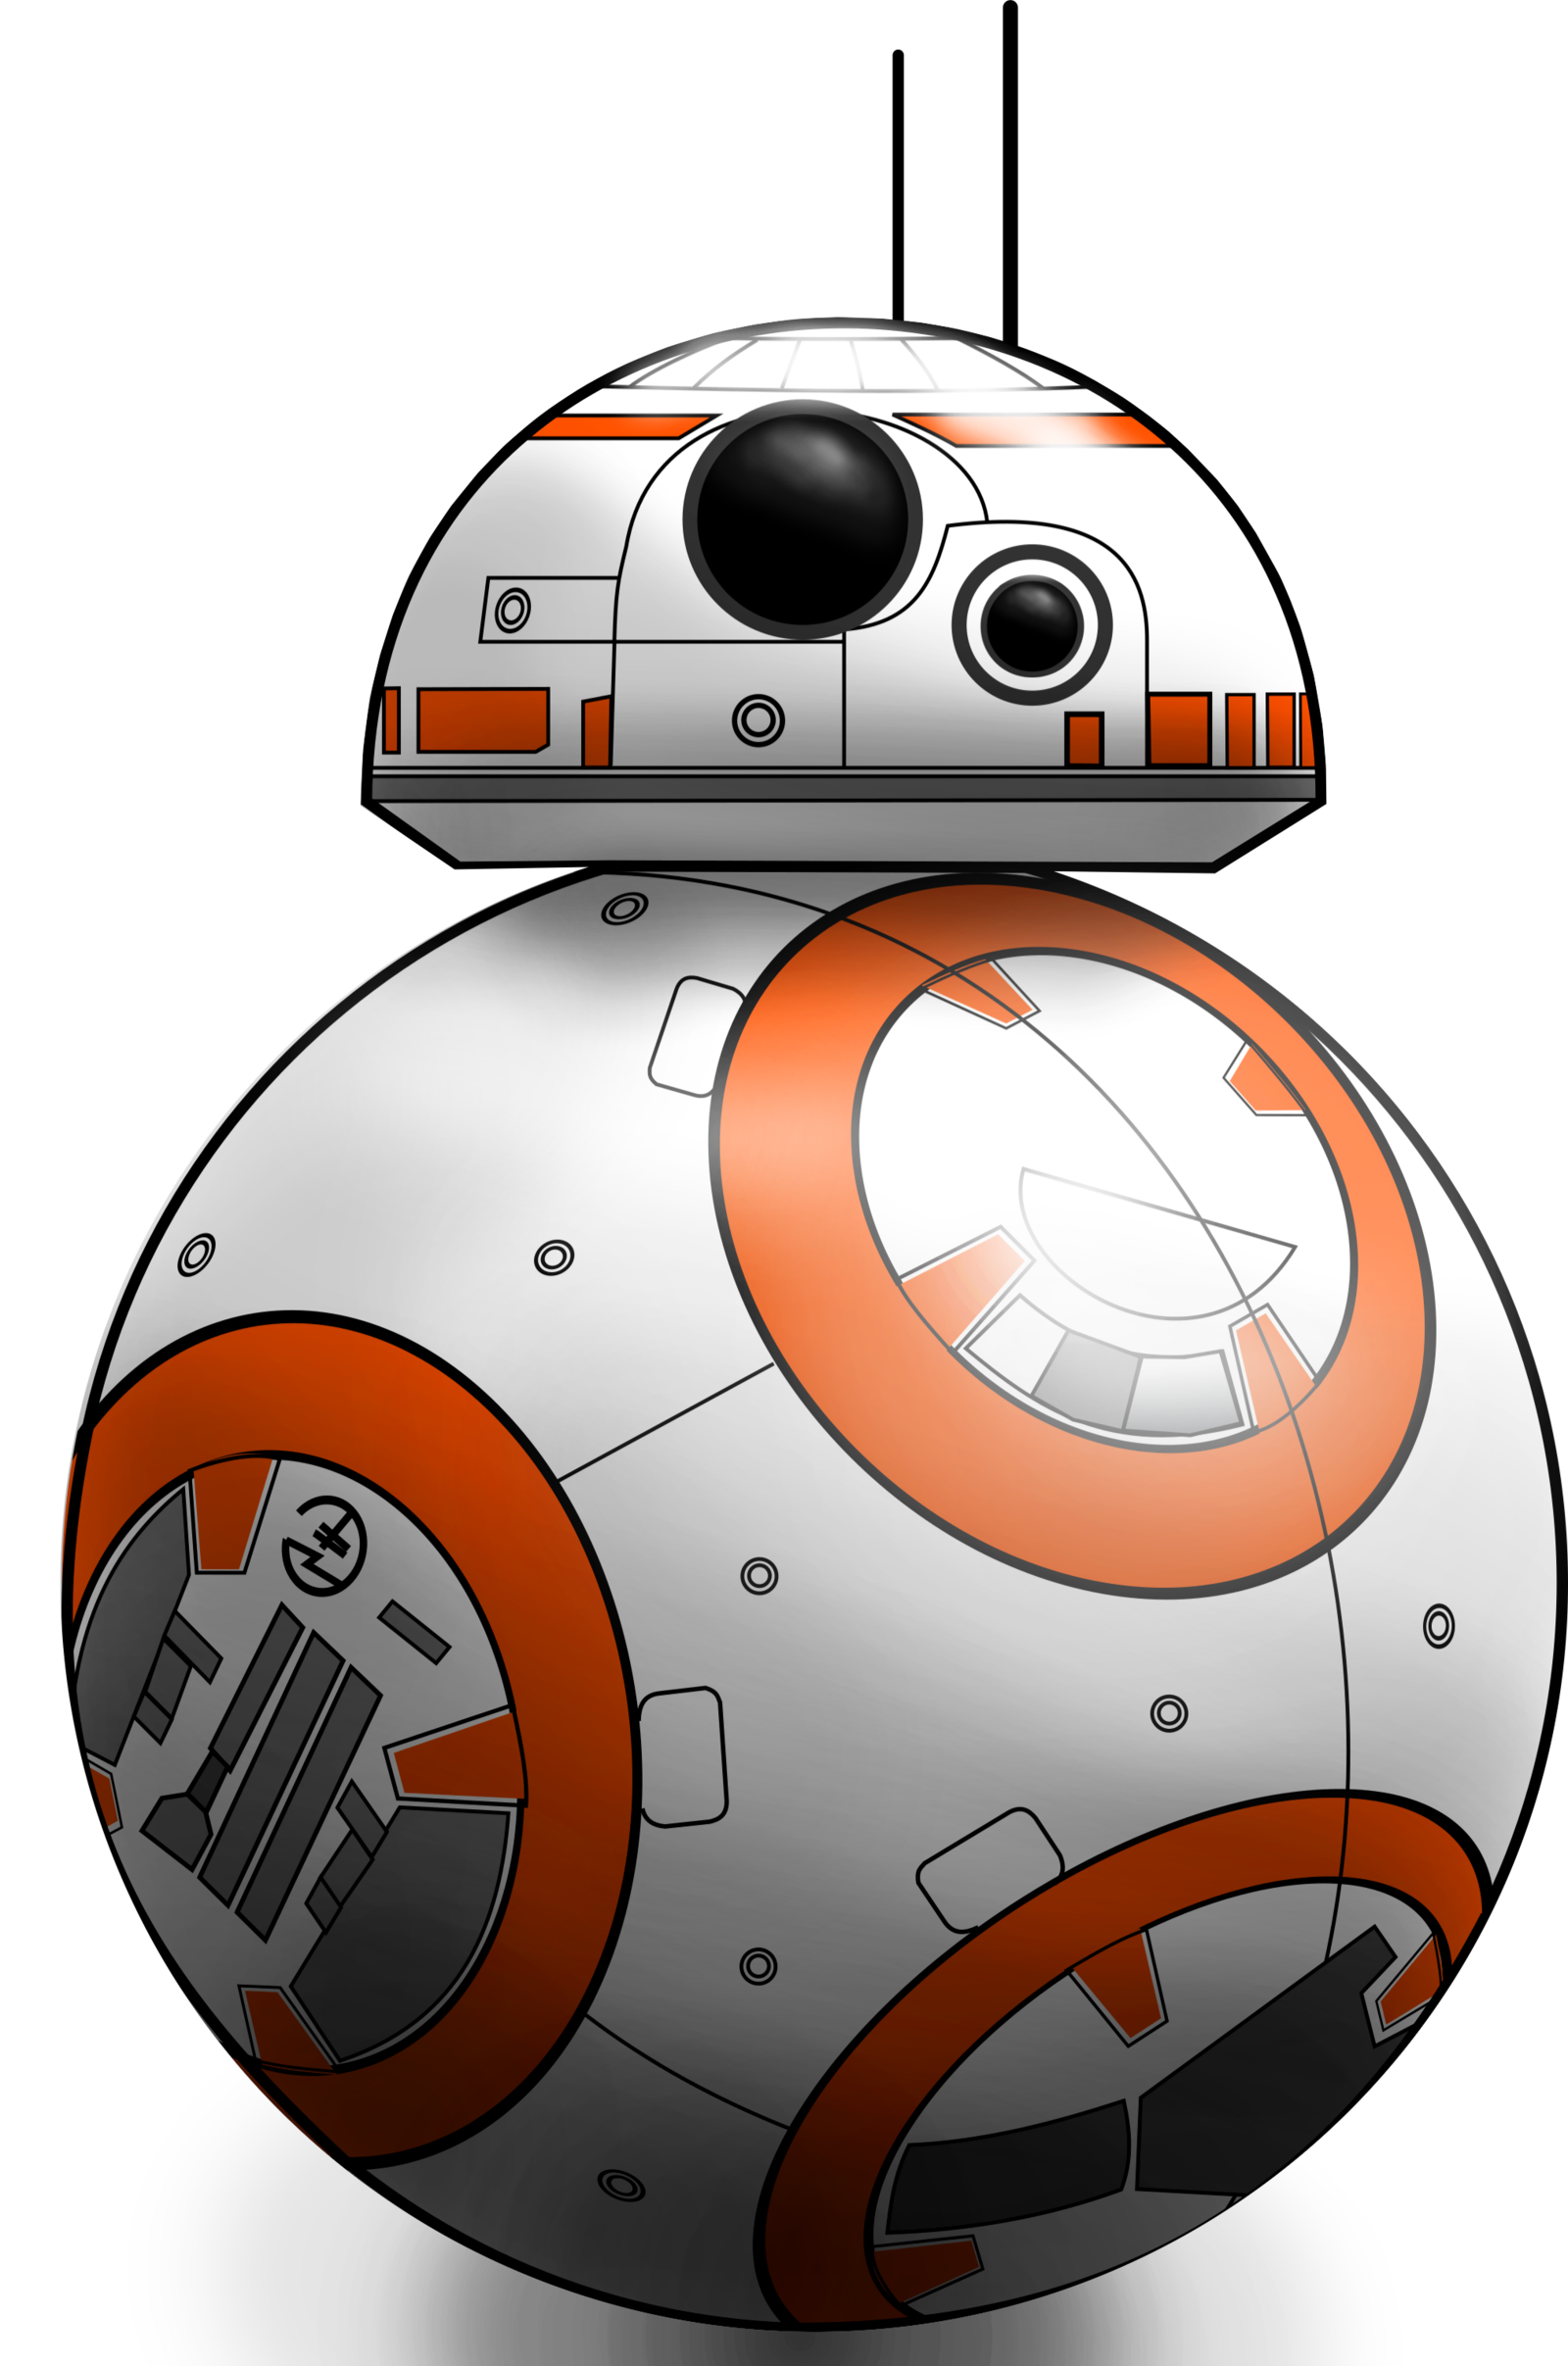 Star wars head clipart image freeuse 18luxury Star Wars Clip Art - Clip arts & coloring pages image freeuse